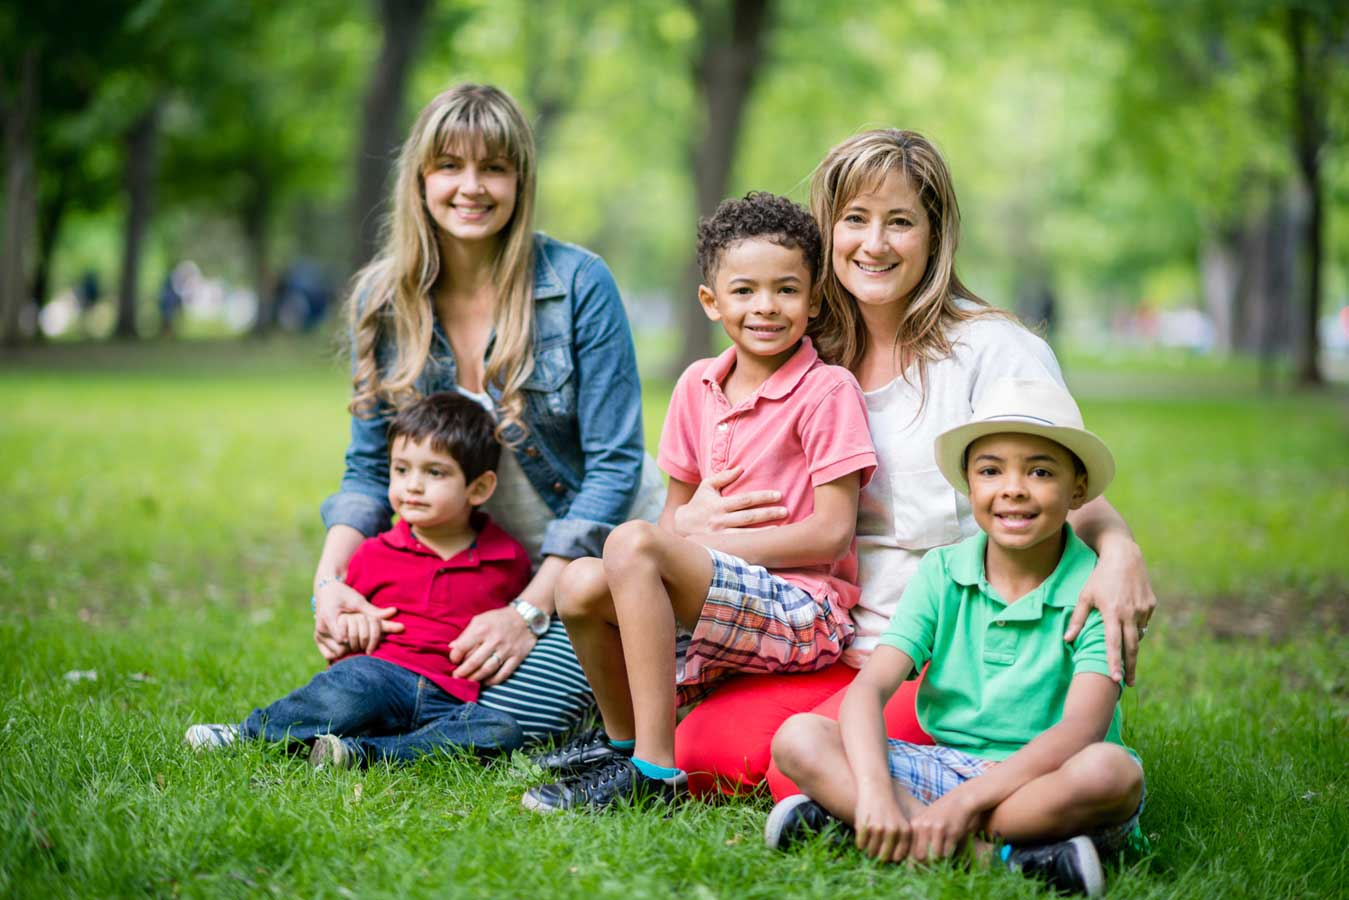 Serving families firstThe benefits we recover change lives